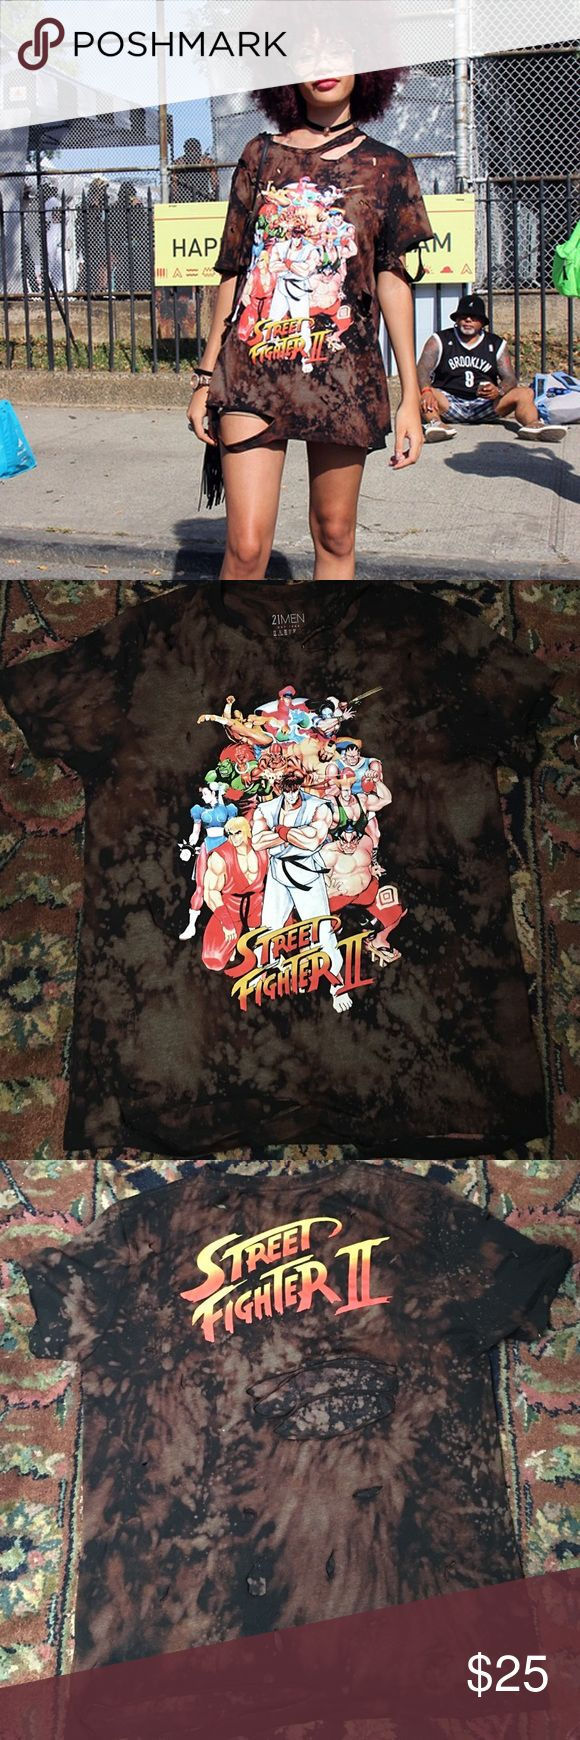 Street Fighters 2 distressed tee✌ This is one of a kind and handmade. I bleached and ripped the T-shirt my self. The are multiple tips (little and big). This gives you that NYC street hip look❤️. This is a large tshirt and can be wore by itself with short or paired with jeans. The material is comfortable and soft. Make sure to wash in cold water ! 21men Tops Tees - Short Sleeve